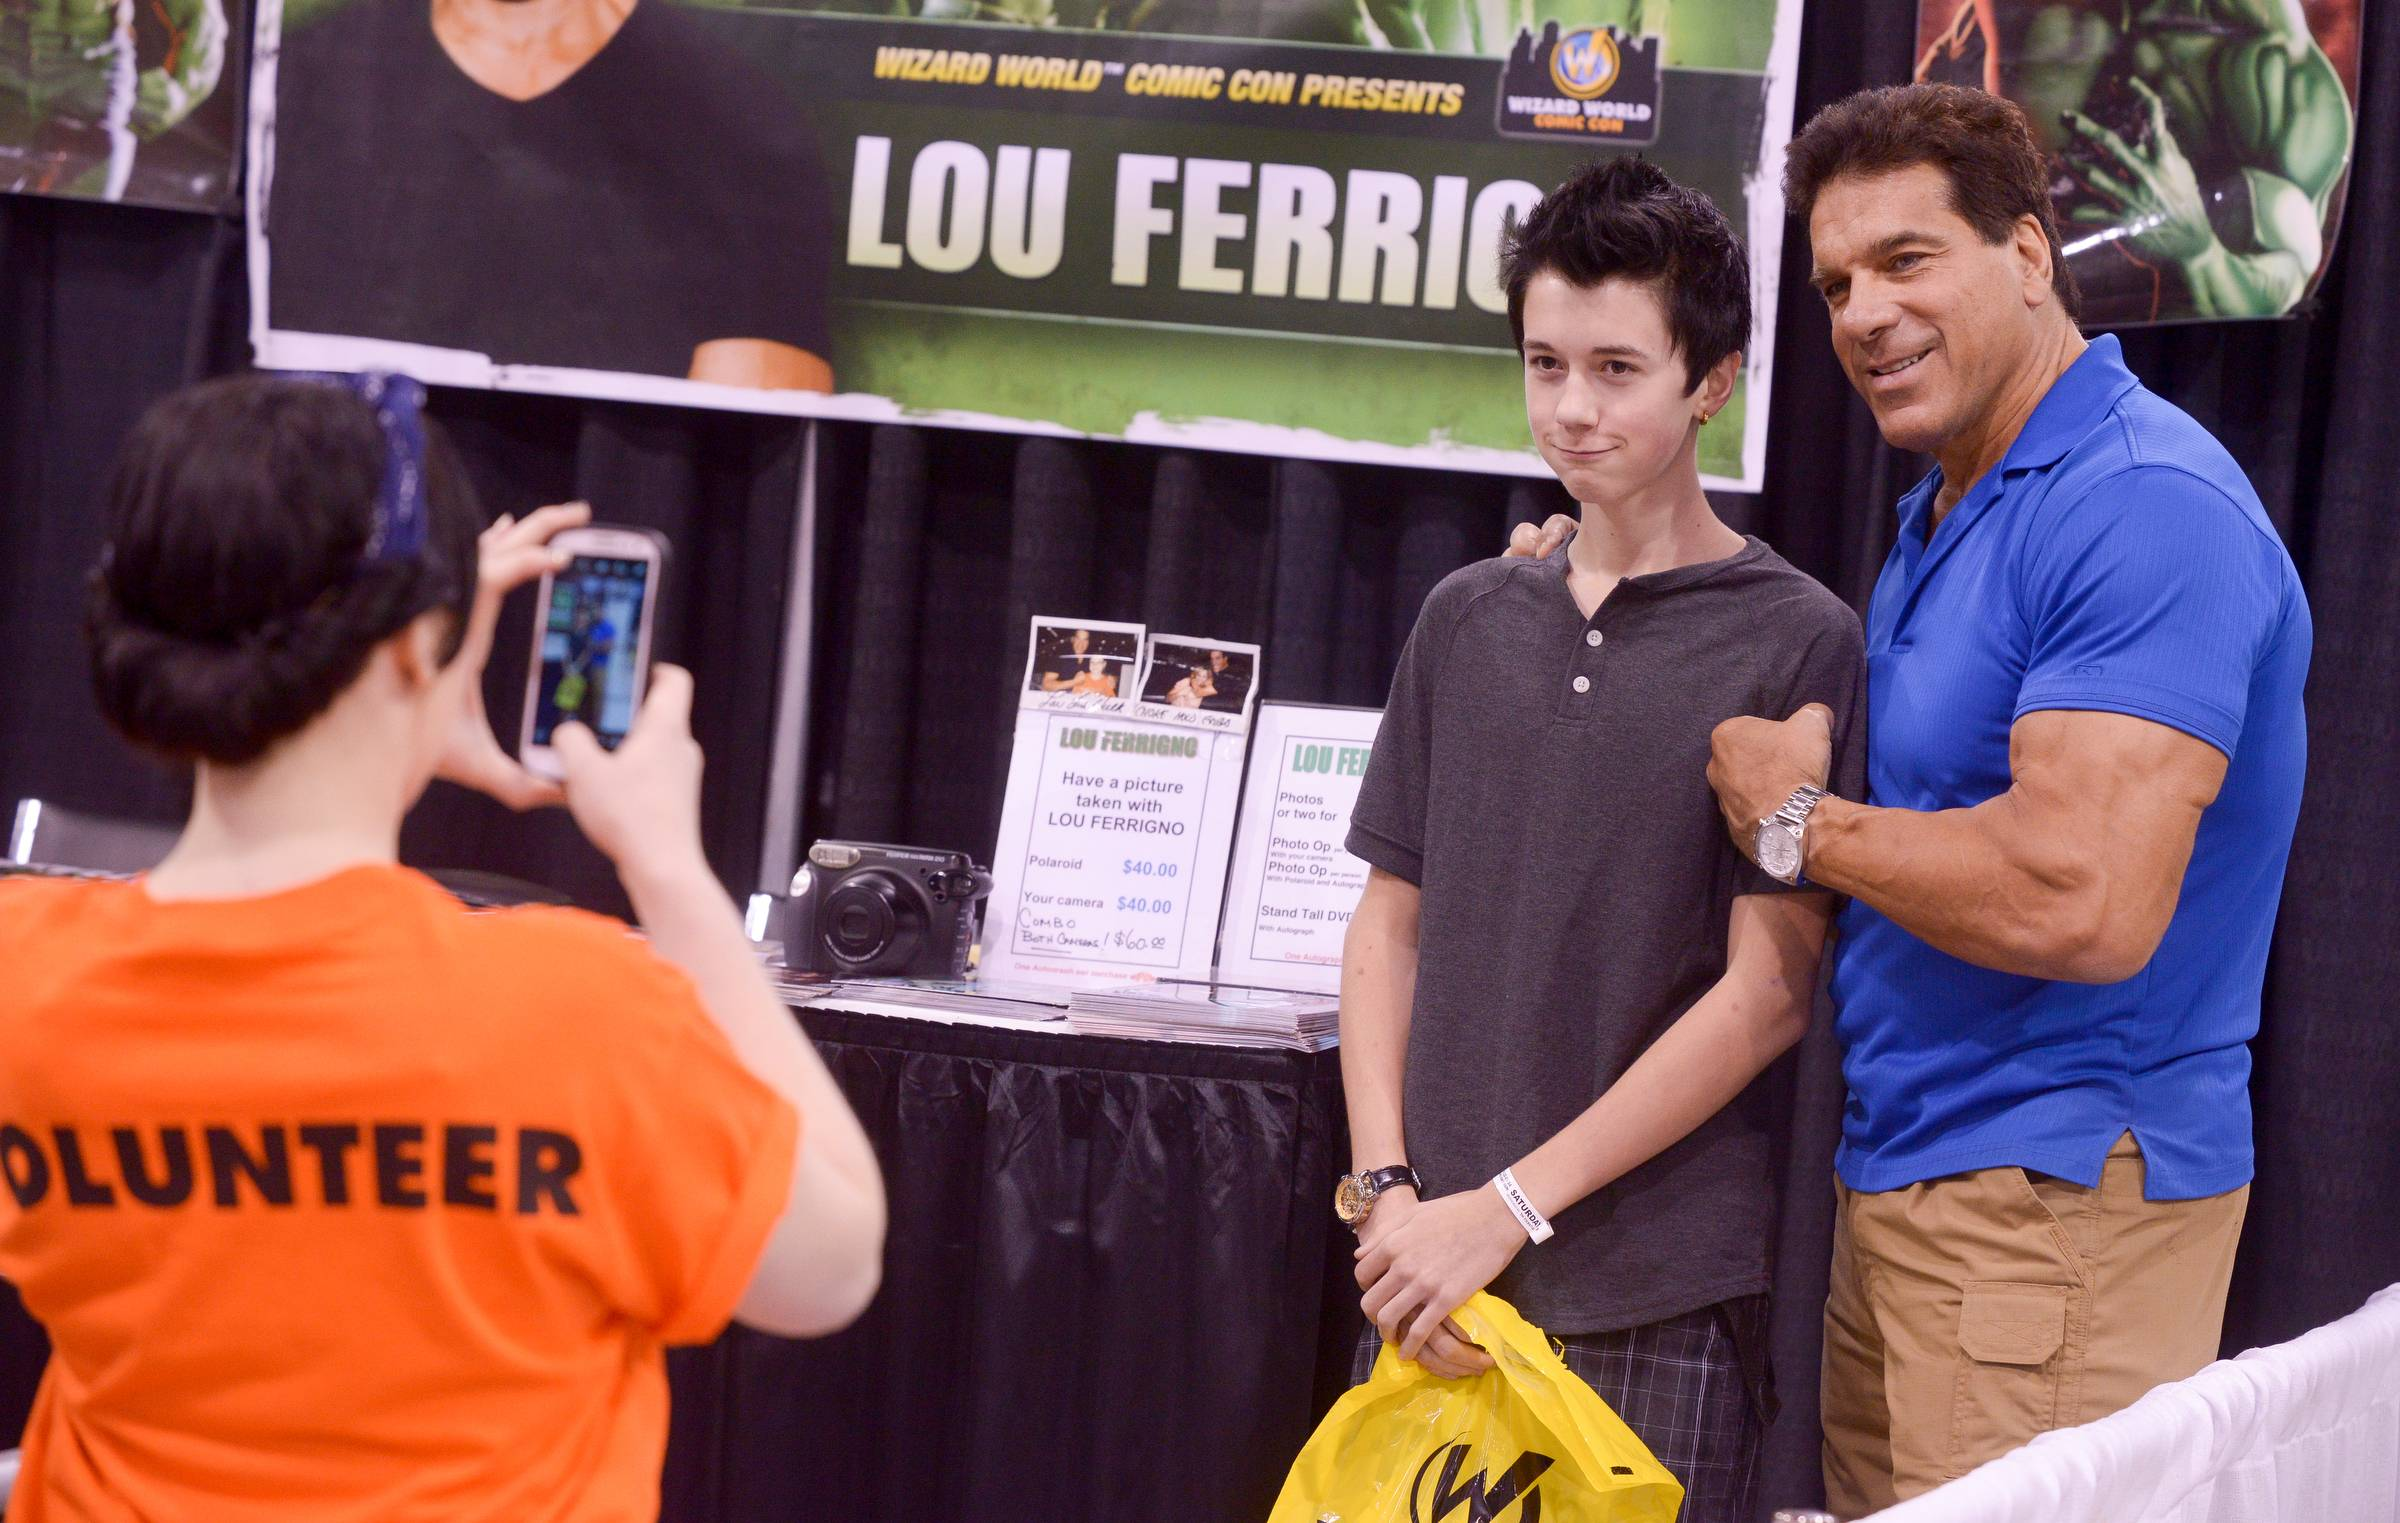 "Noah Fuller, 15 of Tinley Park poses for a photo with Lou Ferrigno, aka the ""Hulk"" from the 1970s TV during his visit to the Comic Con convention at the Donald E. Stephens Convention Center in Rosemont. Fuller said his dad used to watch the Hulk on TV when he was a kid."